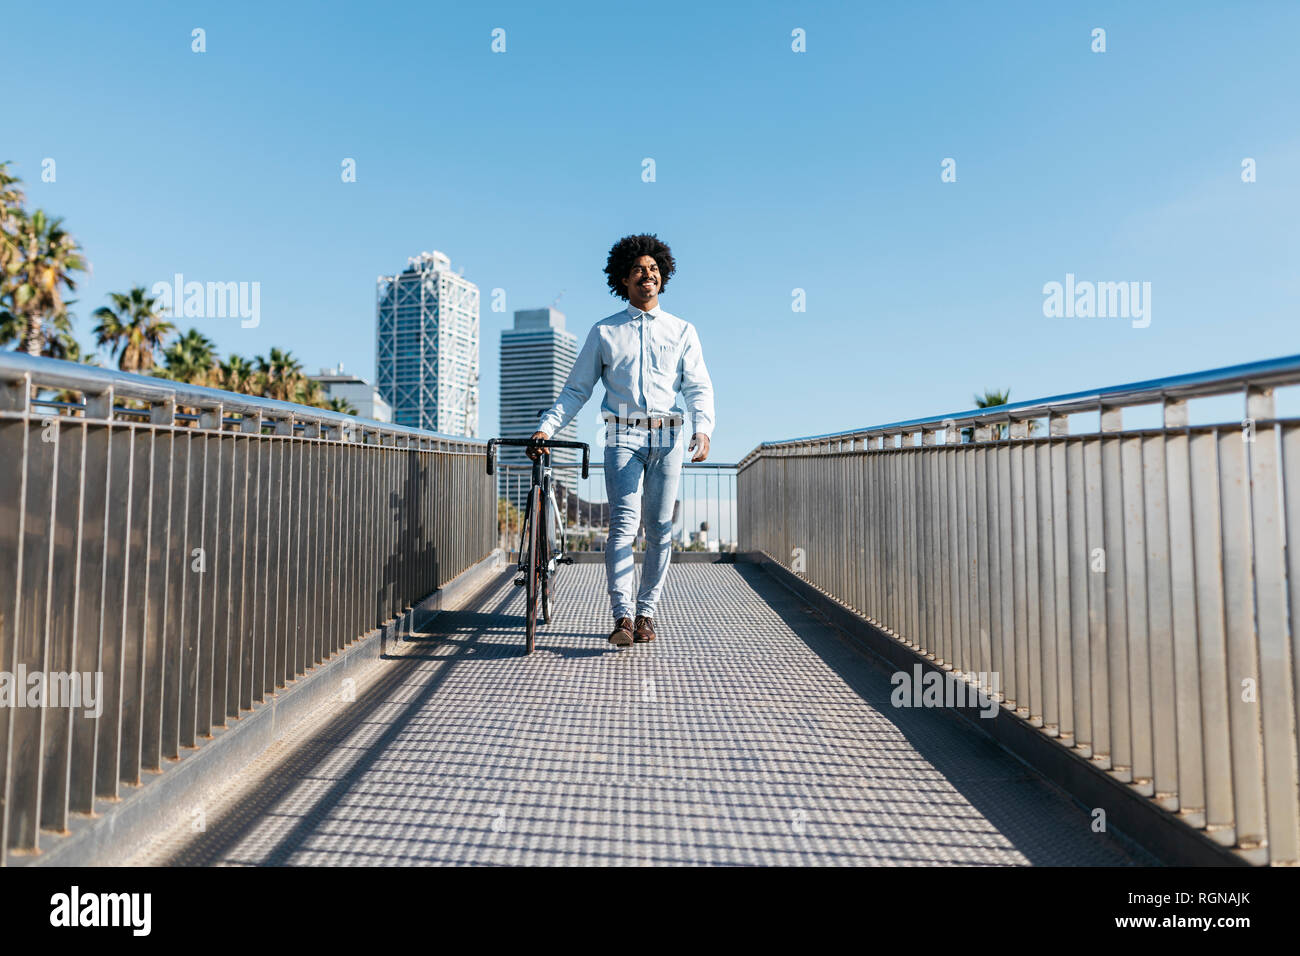 Mid adult man pushing his bicycle on a bridge in the city Stock Photo